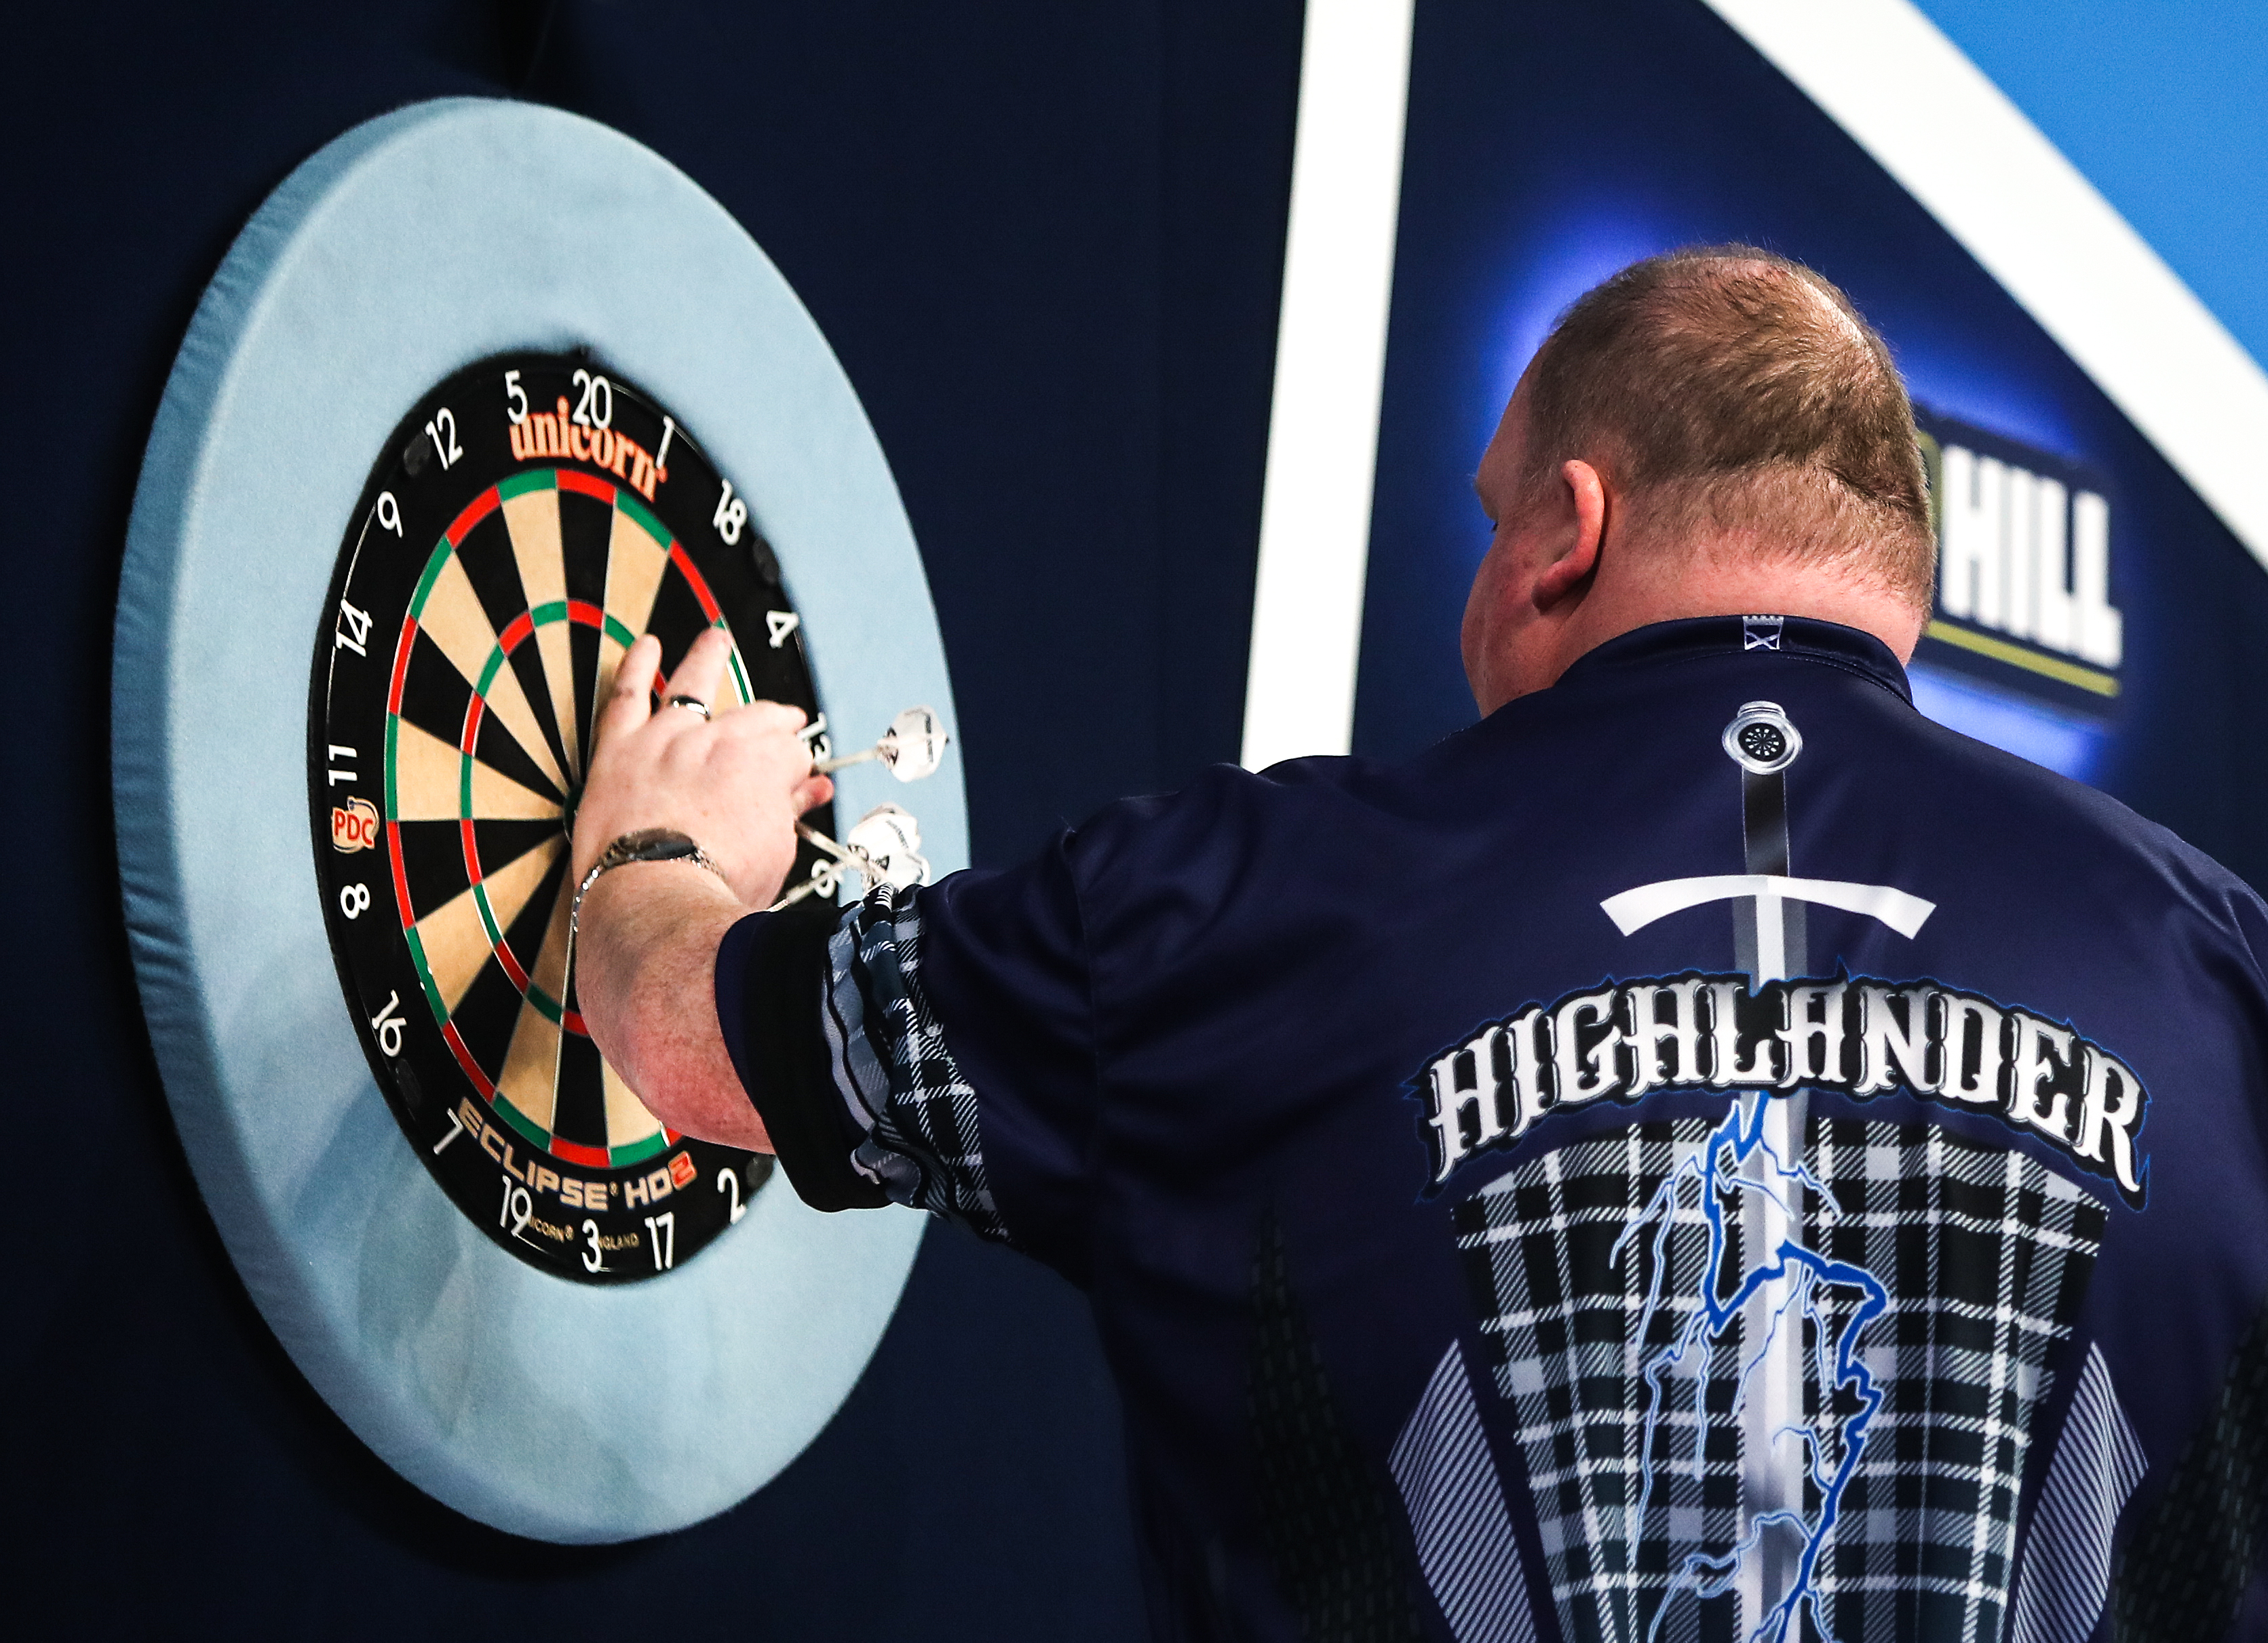 John Henderson picks his darts out of the dartboard during day six of the William Hill World Darts Championship at Alexandra Palace, London. (Photo by Kieran Cleeves/PA Images via Getty Images)